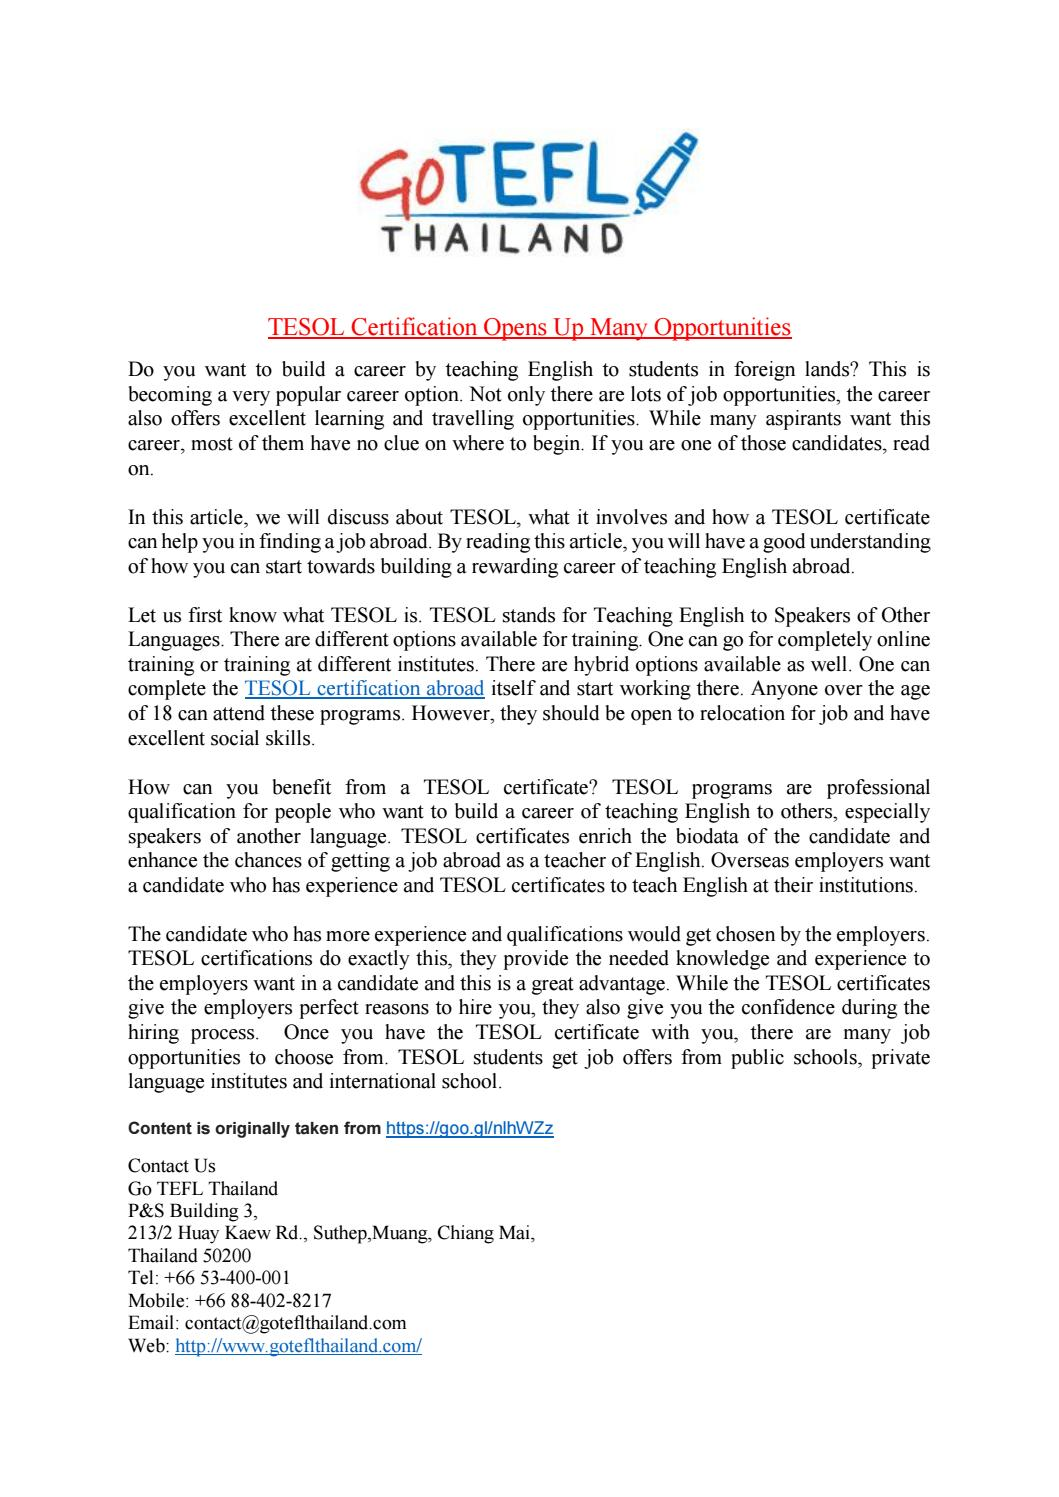 Tesol Certification Opens Up Many Opportunities By Go Tefl Thailand